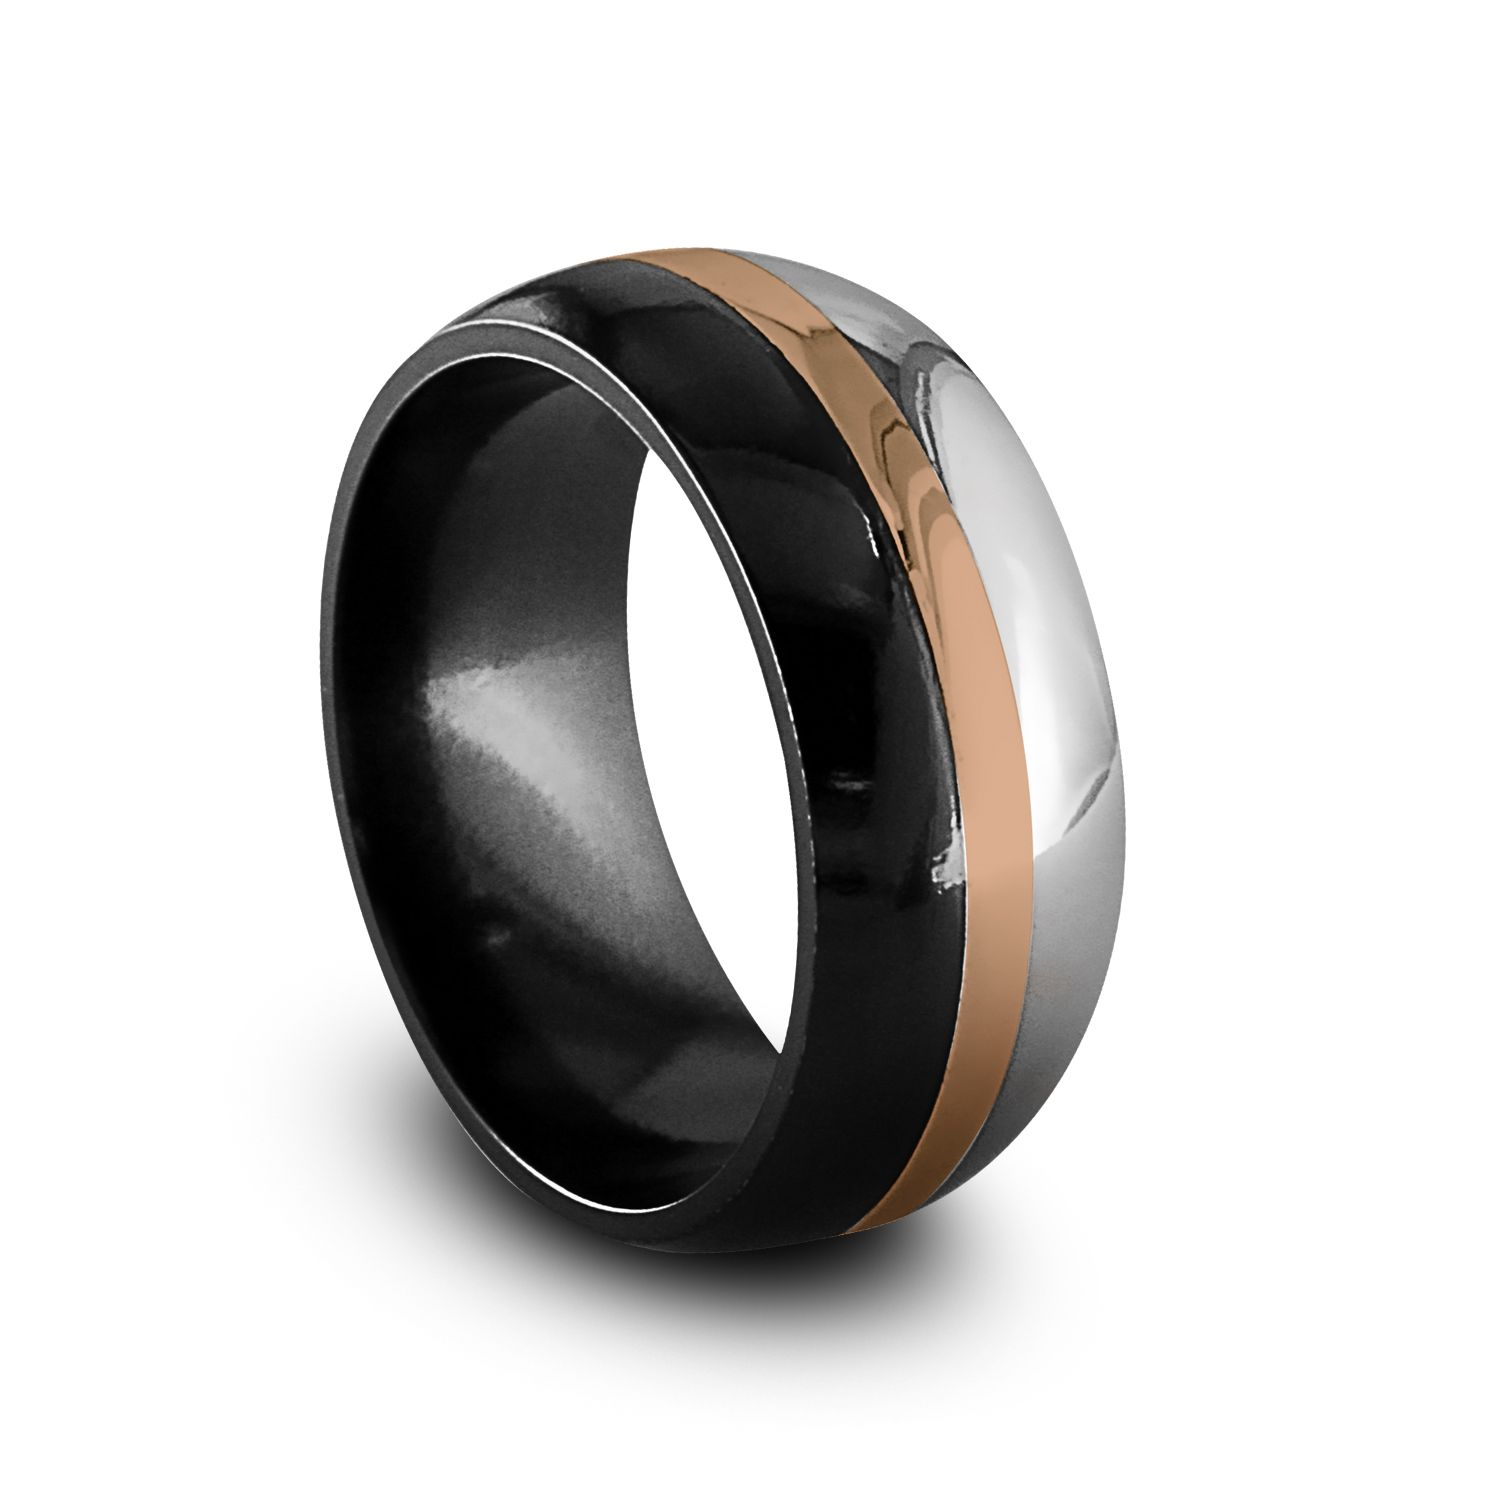 ring black gold - Black Gold Wedding Ring